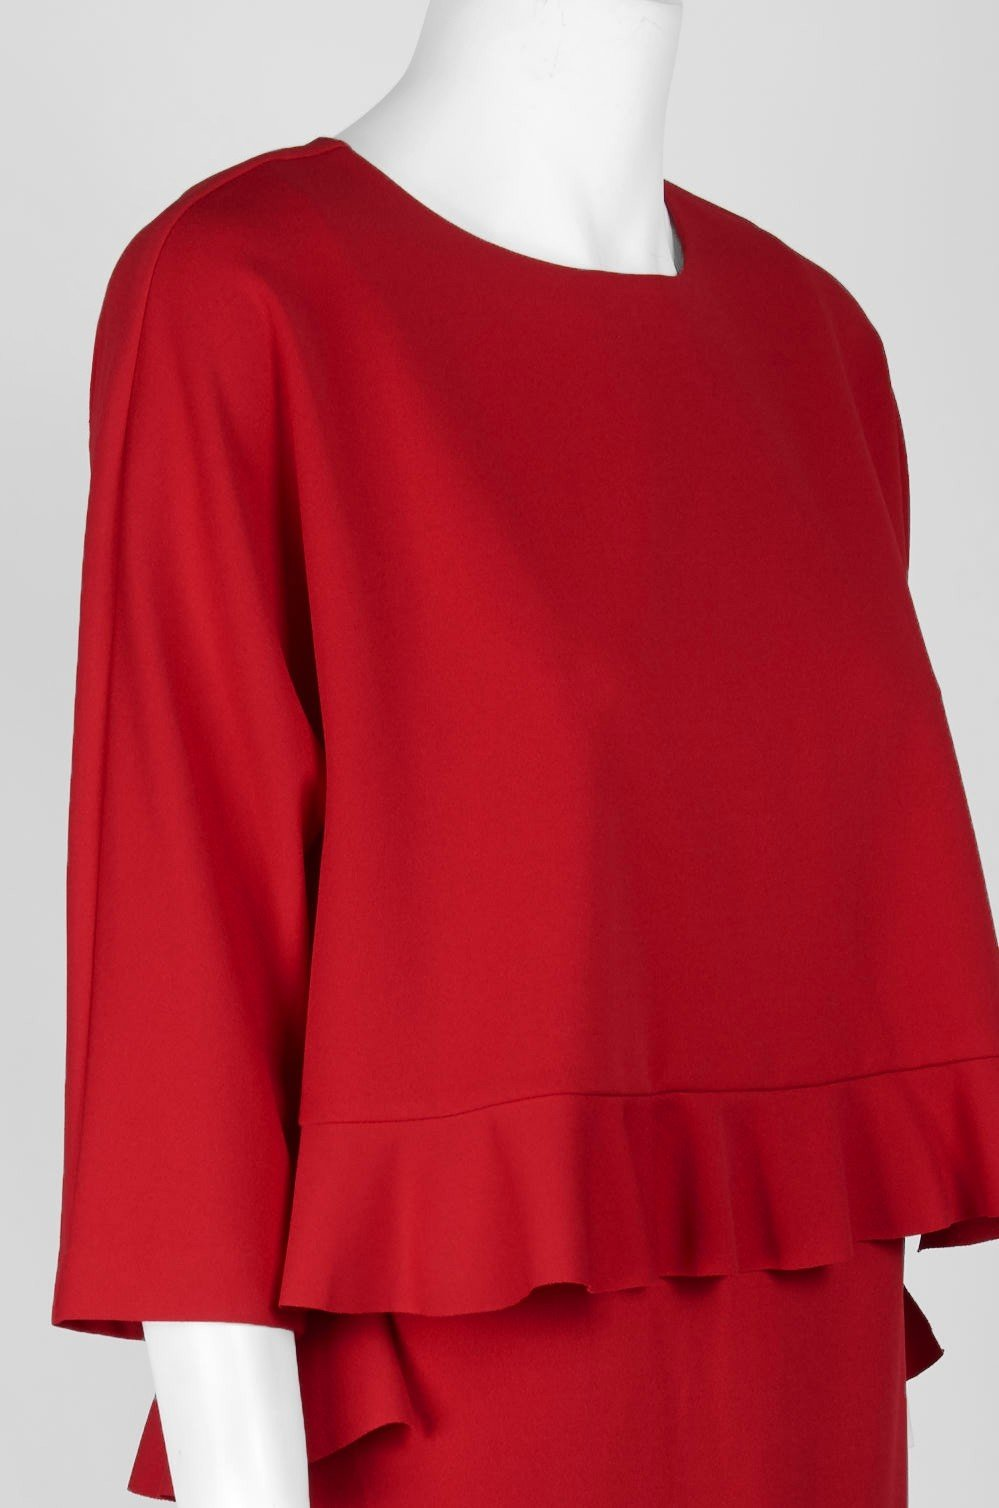 Taylor - 9859M Quarter Sleeve Ruffle-Trimmed Popover Dress In Red